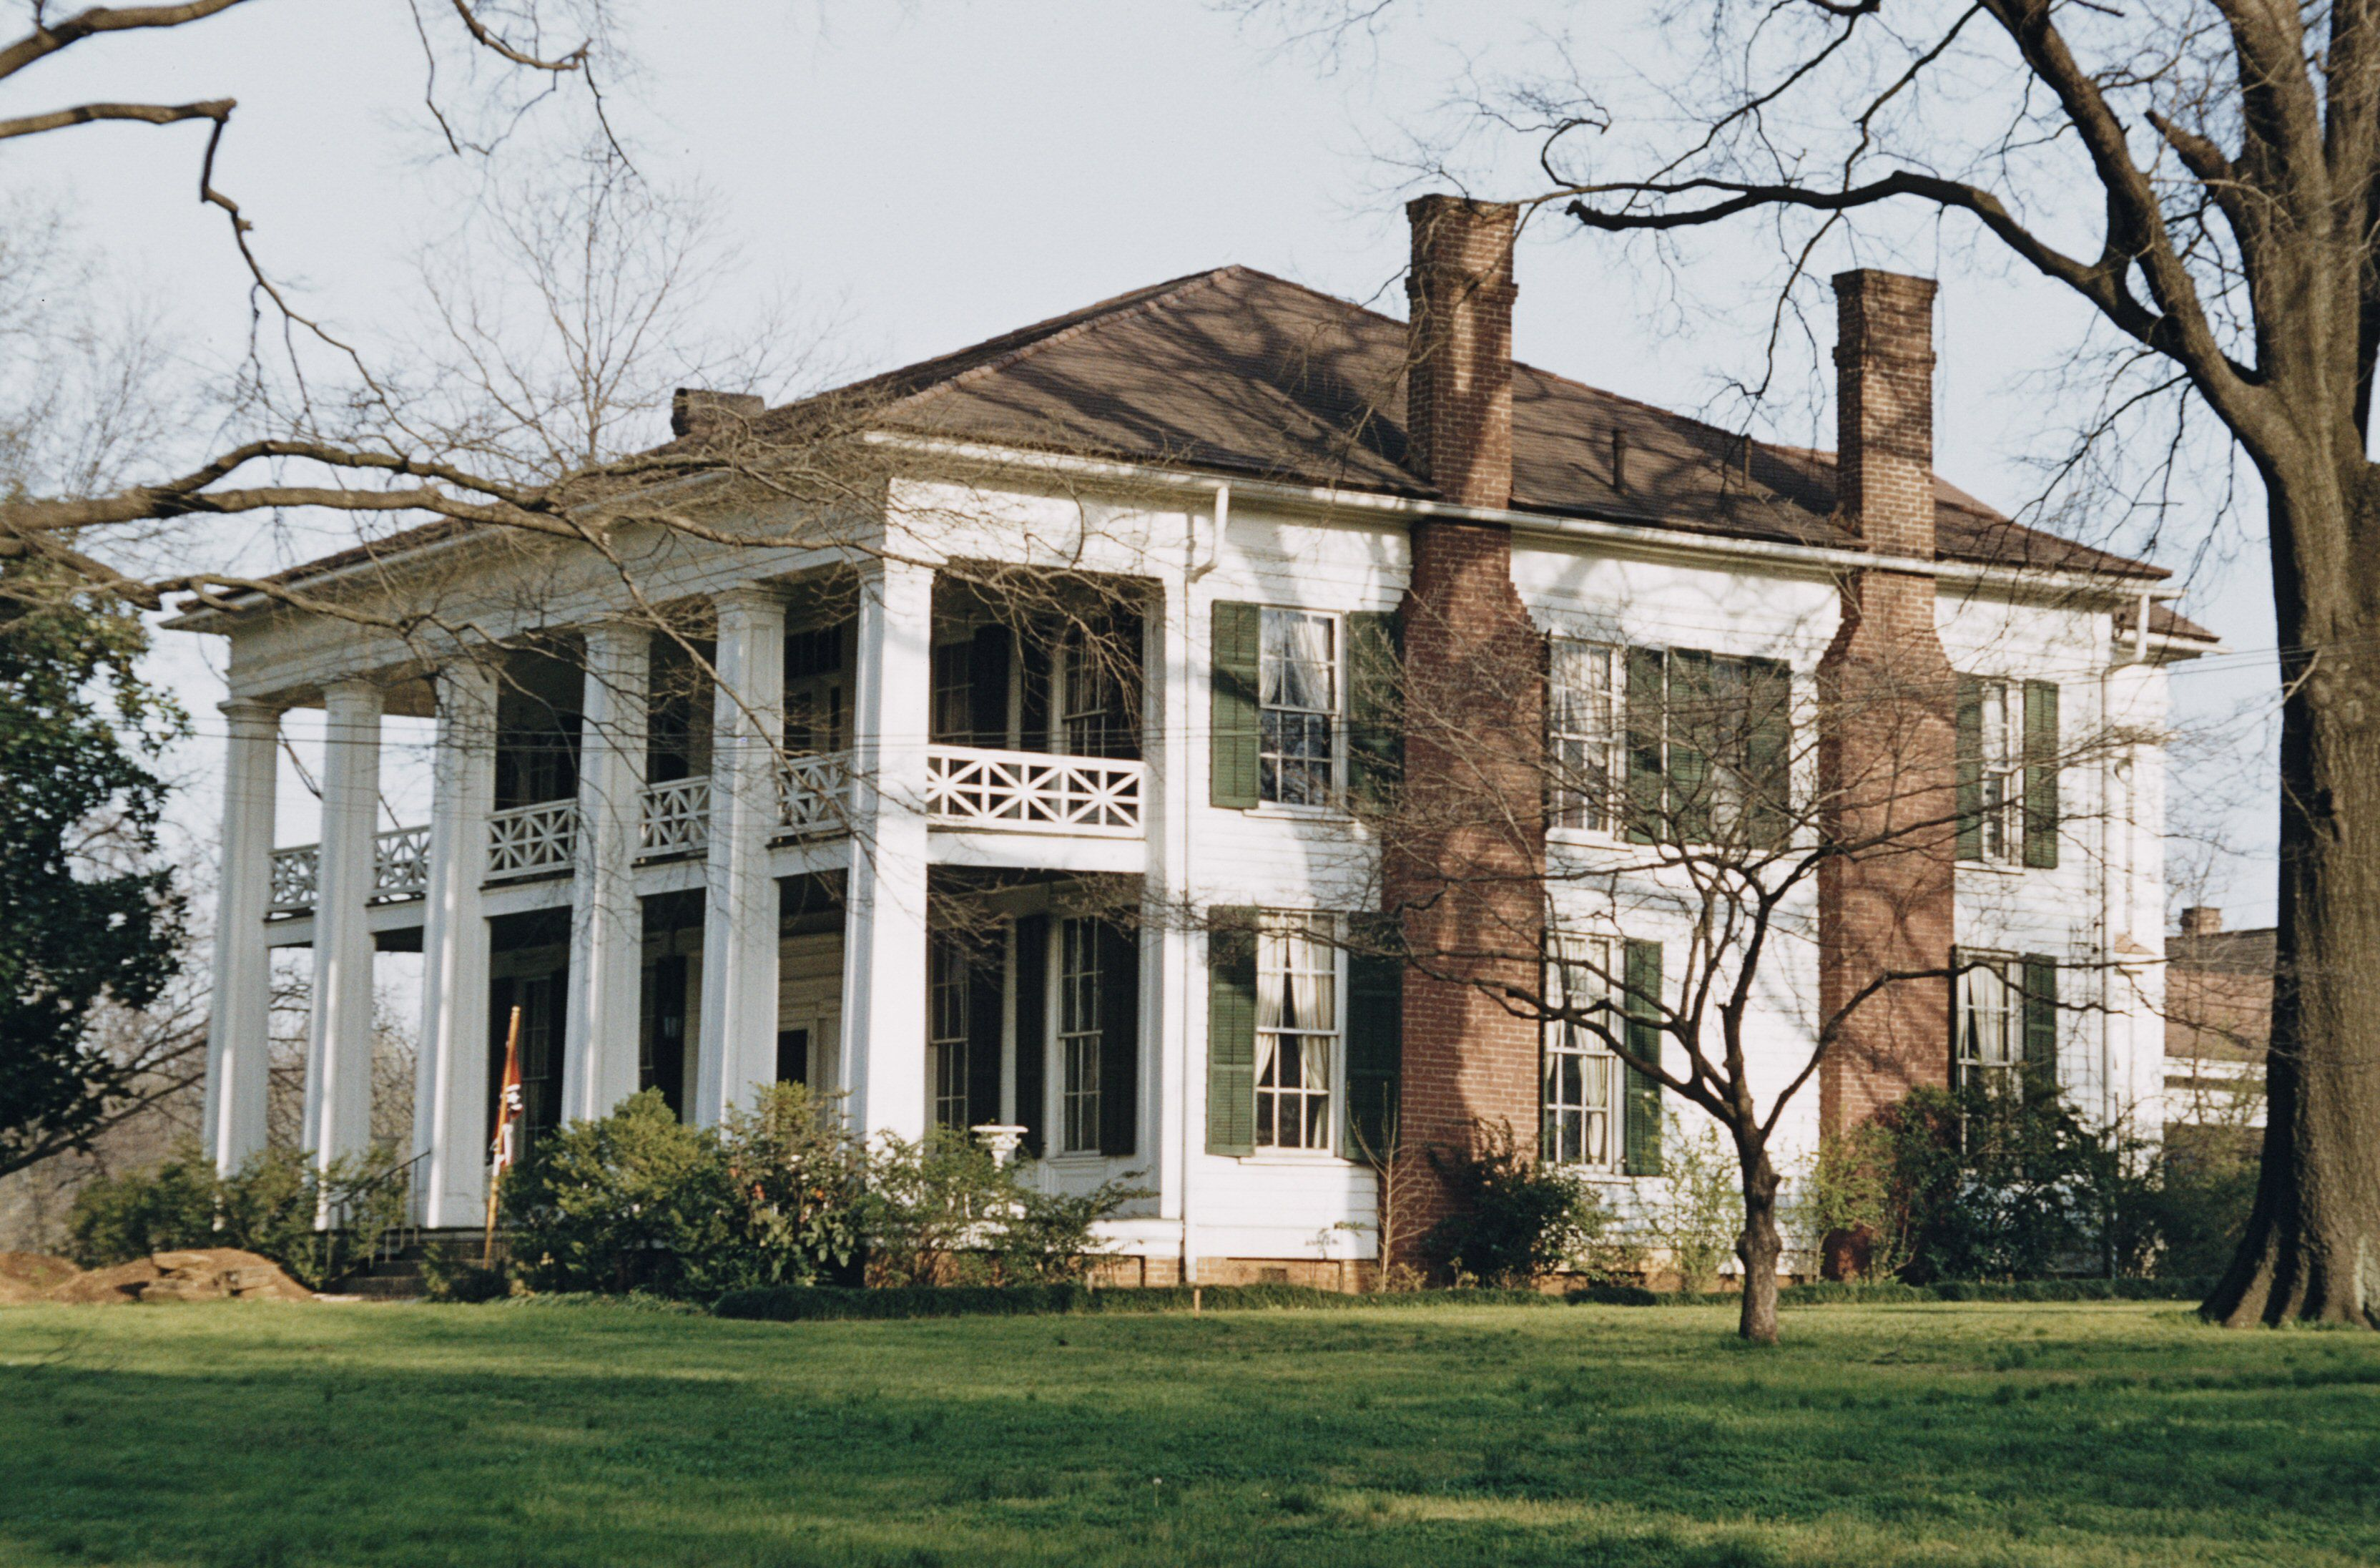 Large, 2 story white plantation home, with two chimneys and Roman lattice on the second story balcony